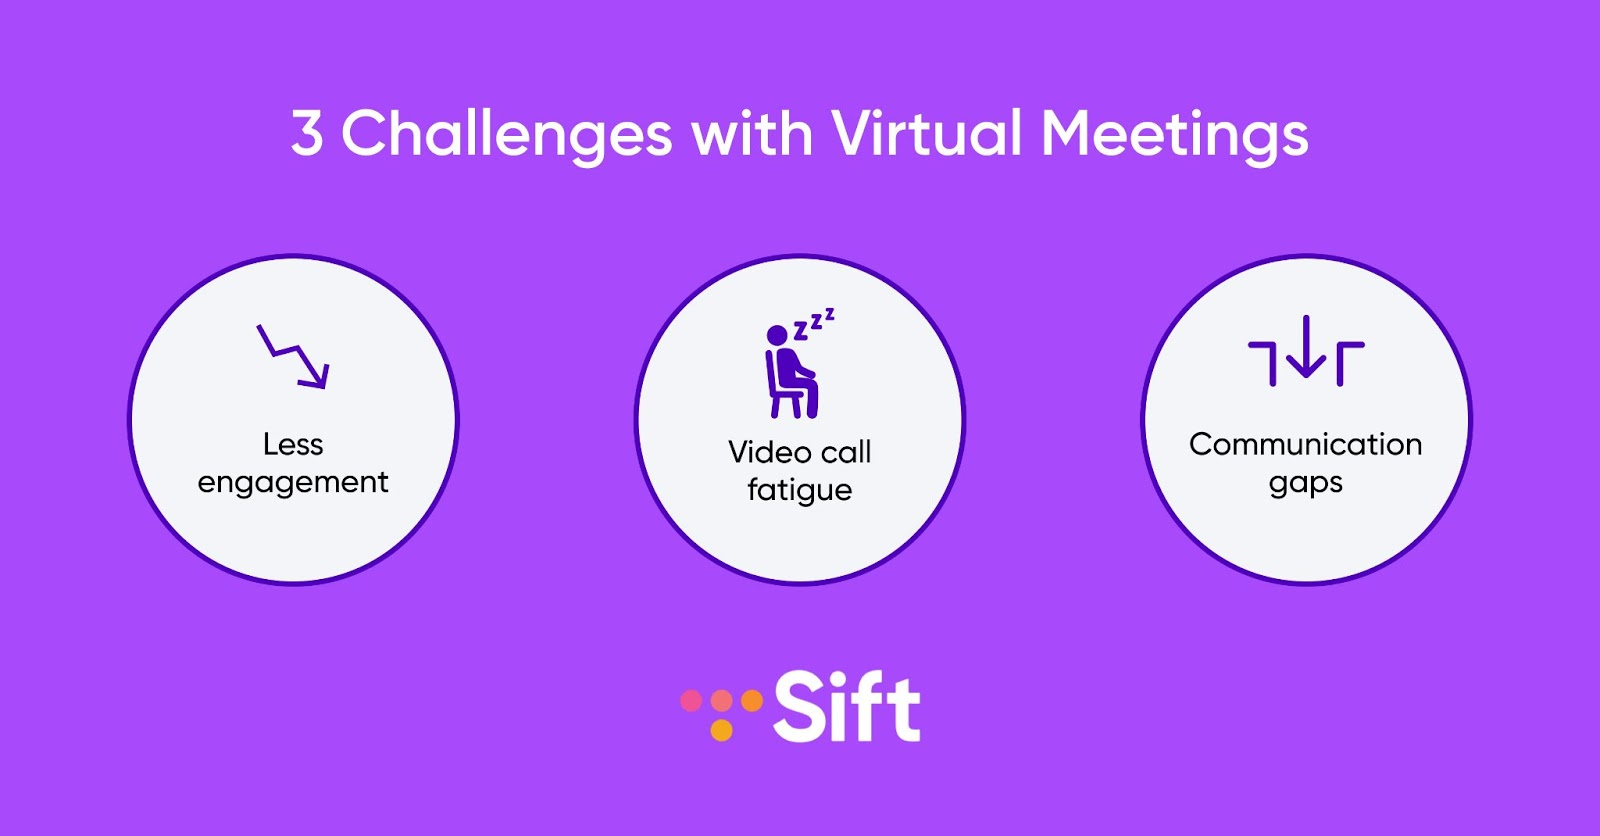 Three challenges with virtual meetings: less engagement, video call fatigue, and communication gaps